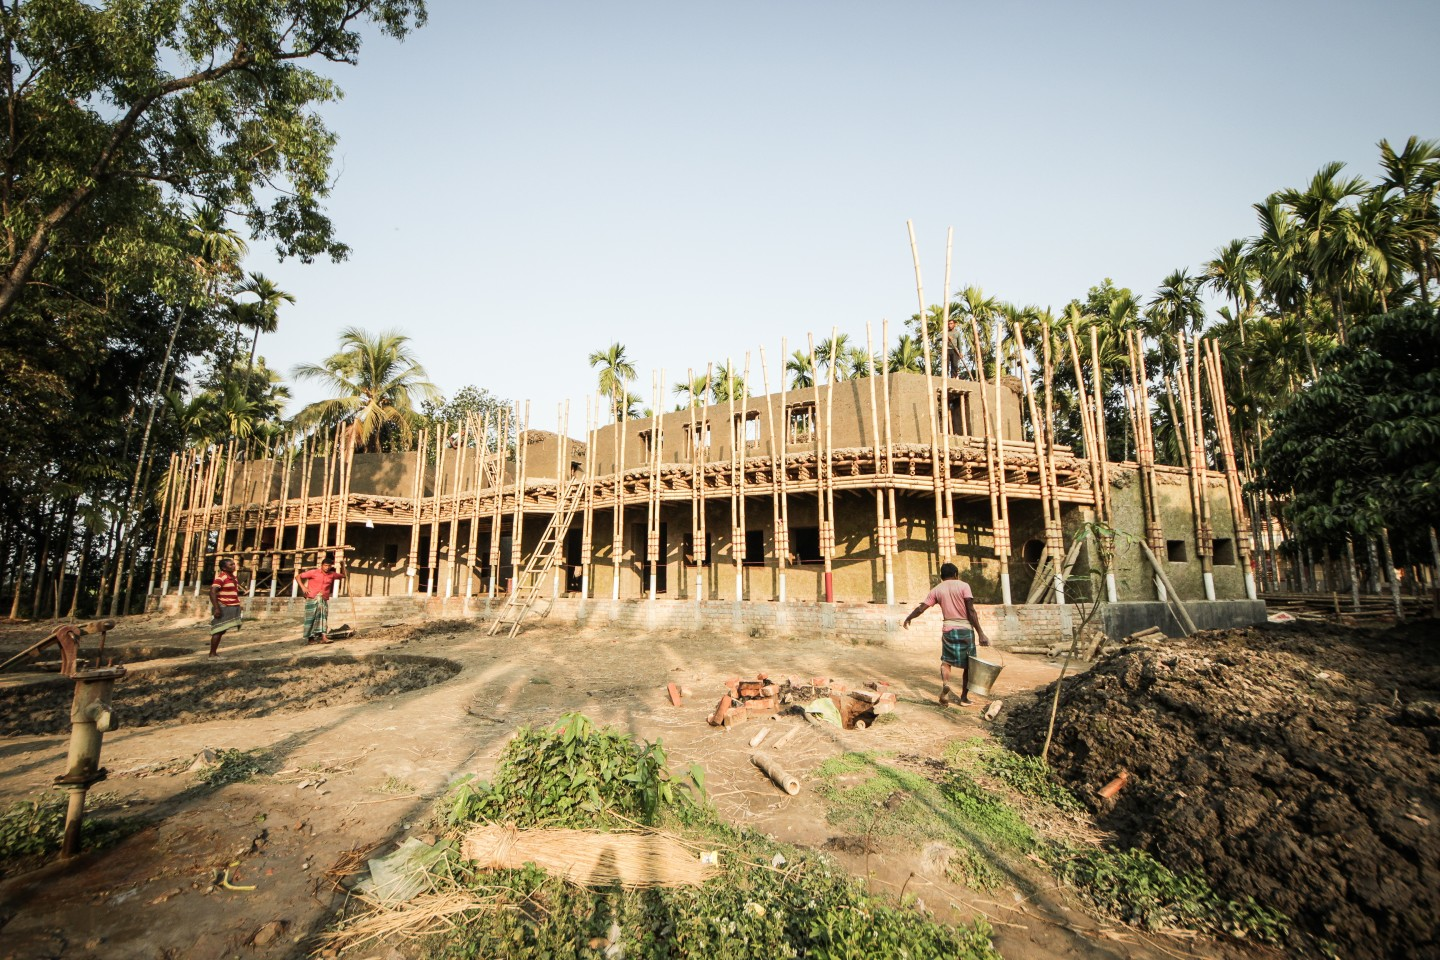 Anandaloy was built using mud and bamboo by a team of locals